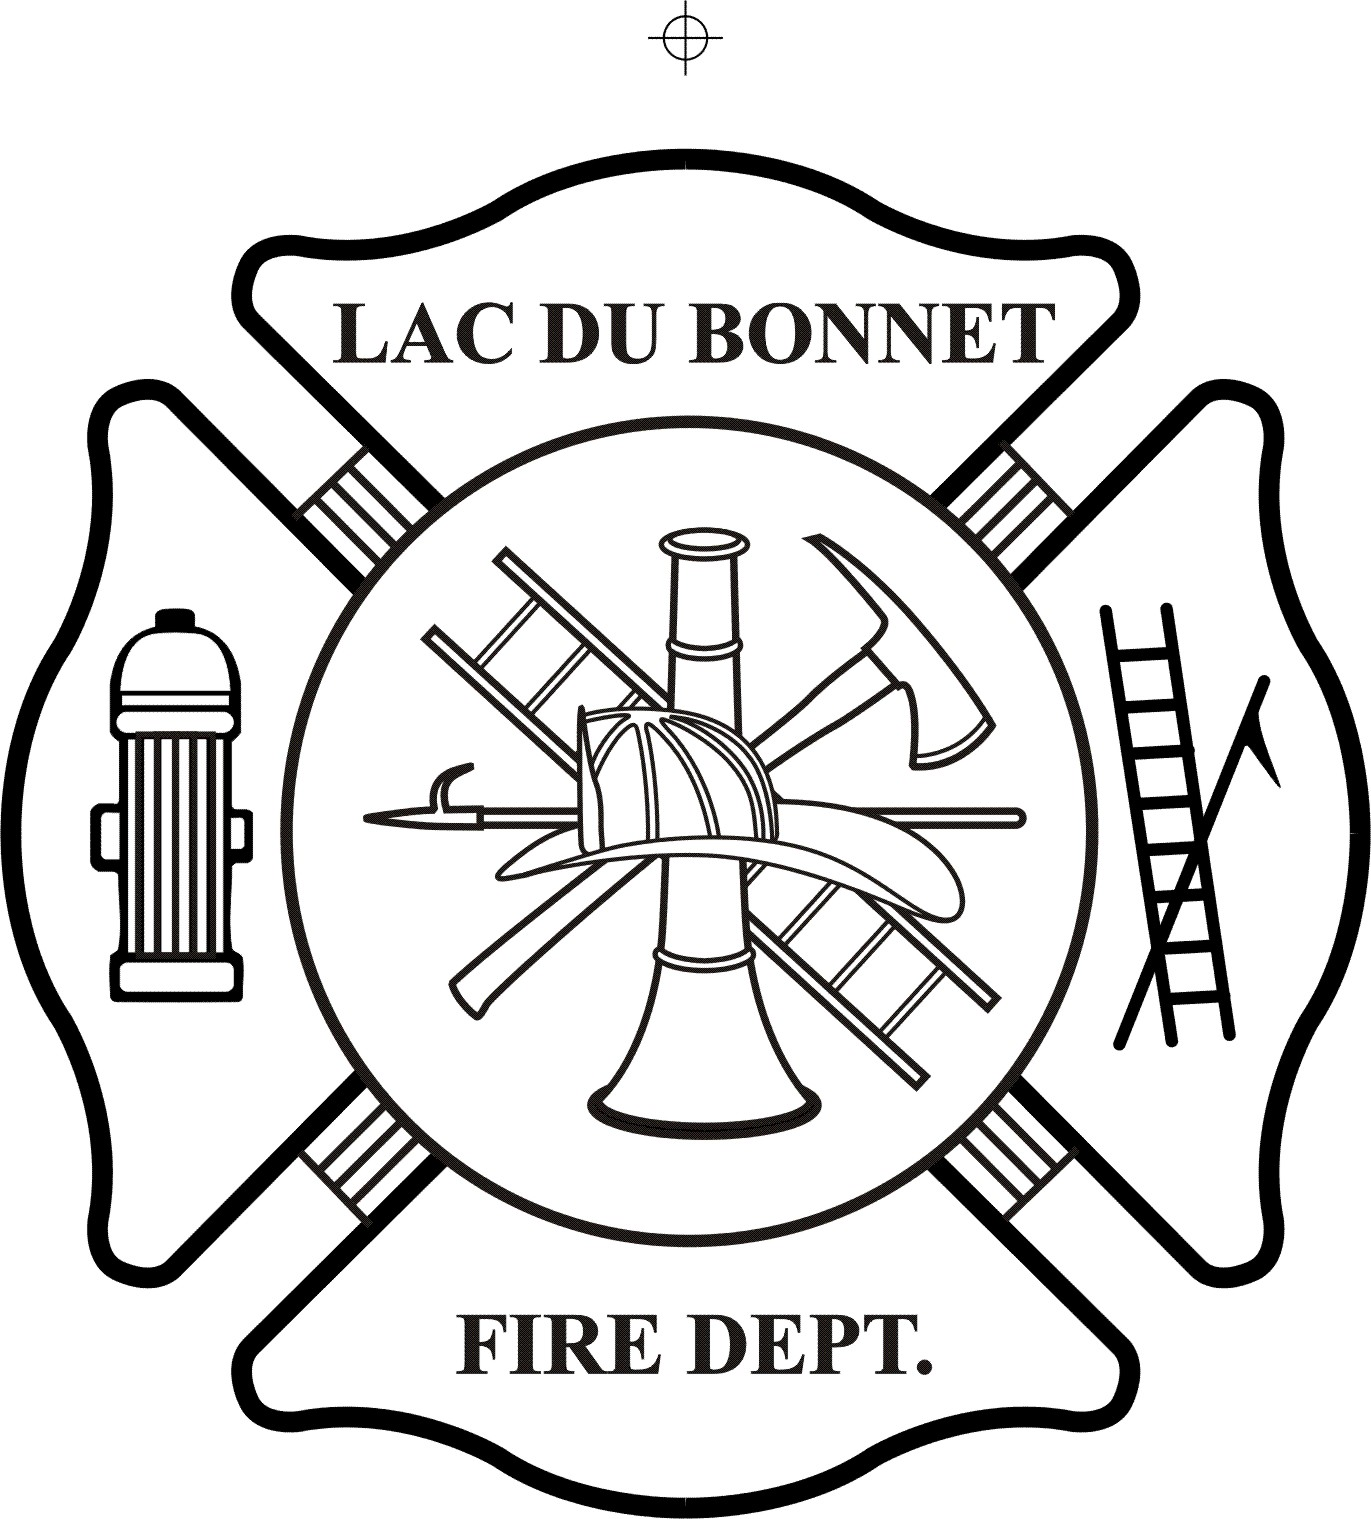 Fire Department Maltese Cross Coloring Page - Part 1 | 1519x1371